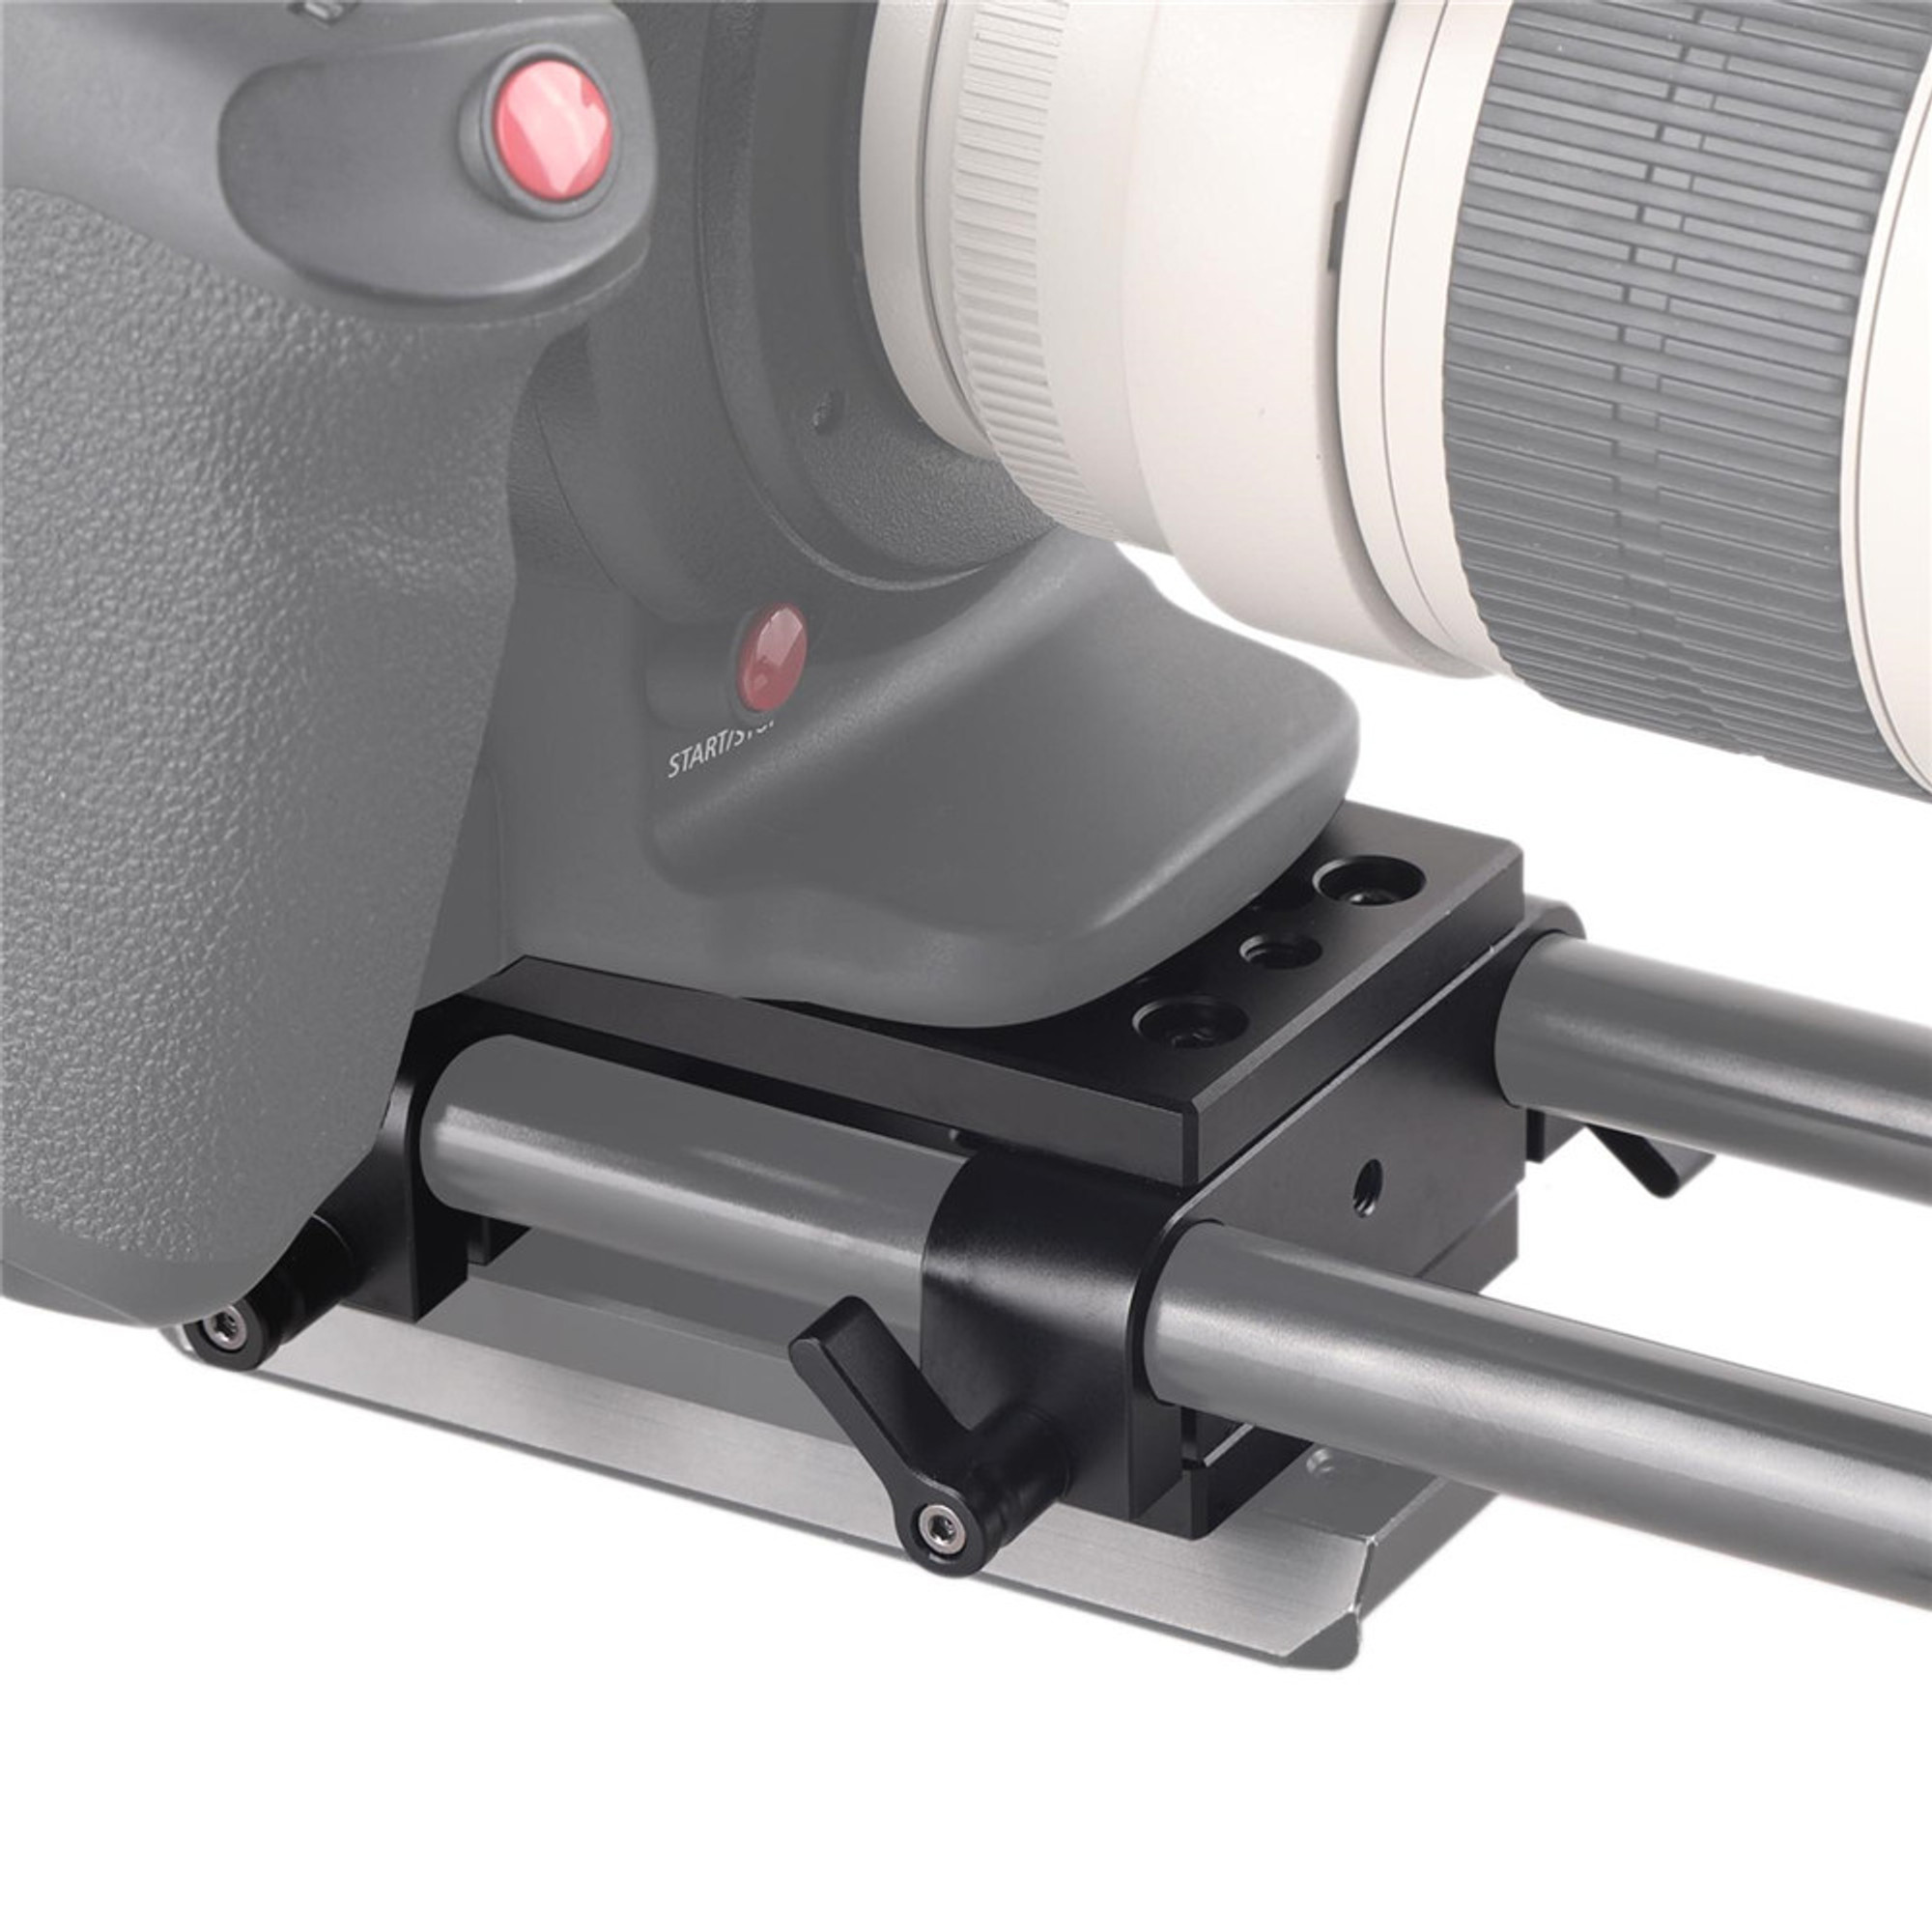 Smallrig Baseplate With Dual 15mm Rod Clamp 1798 Smallrig